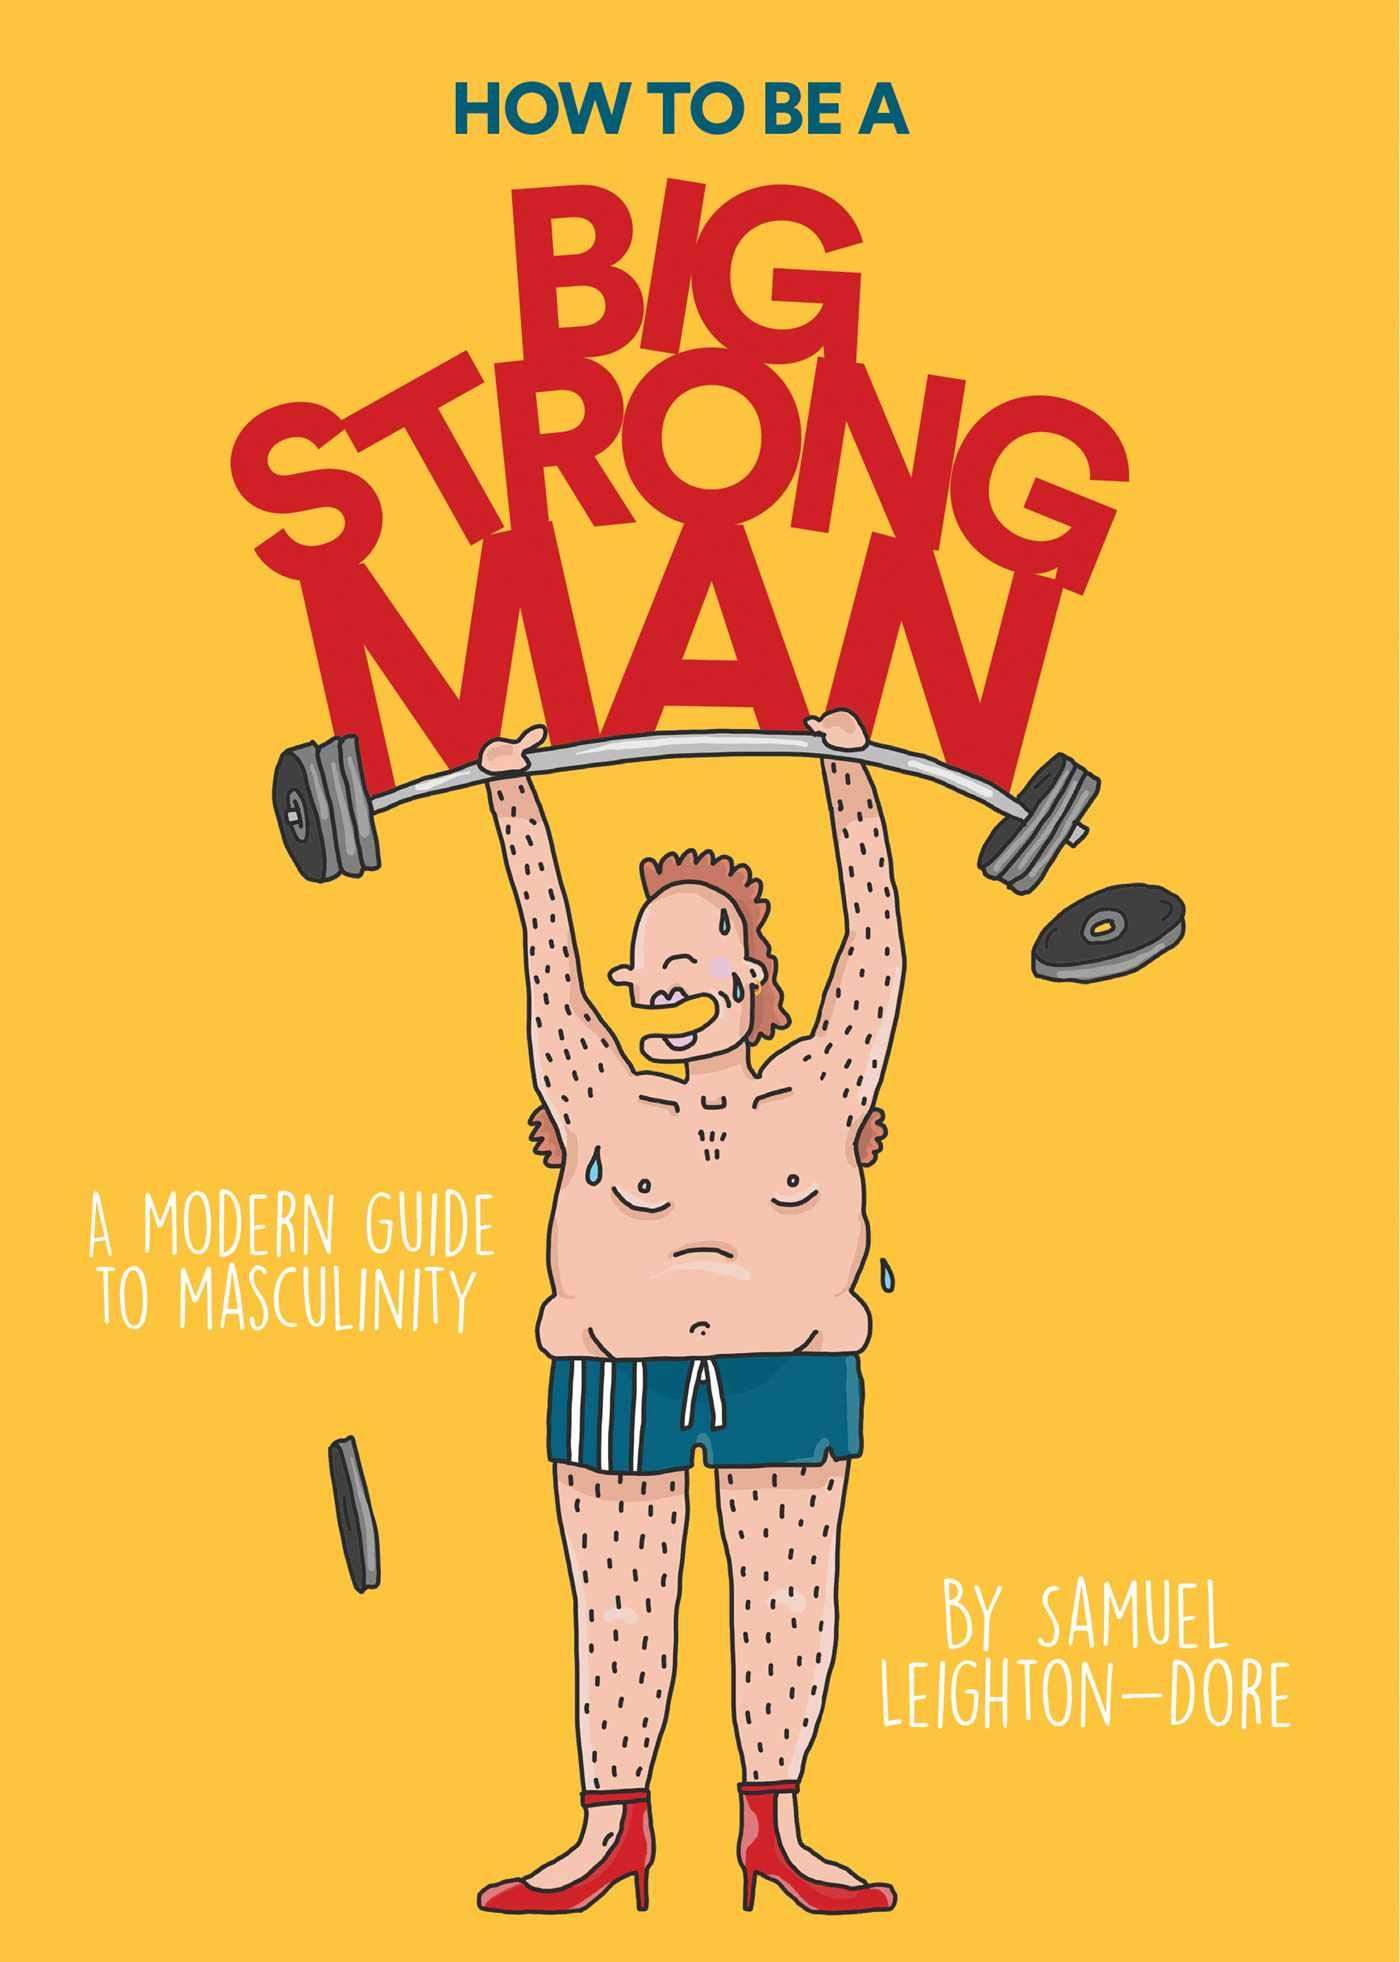 How to Be a Big Strong Man: A Modern Guide to Masculinity